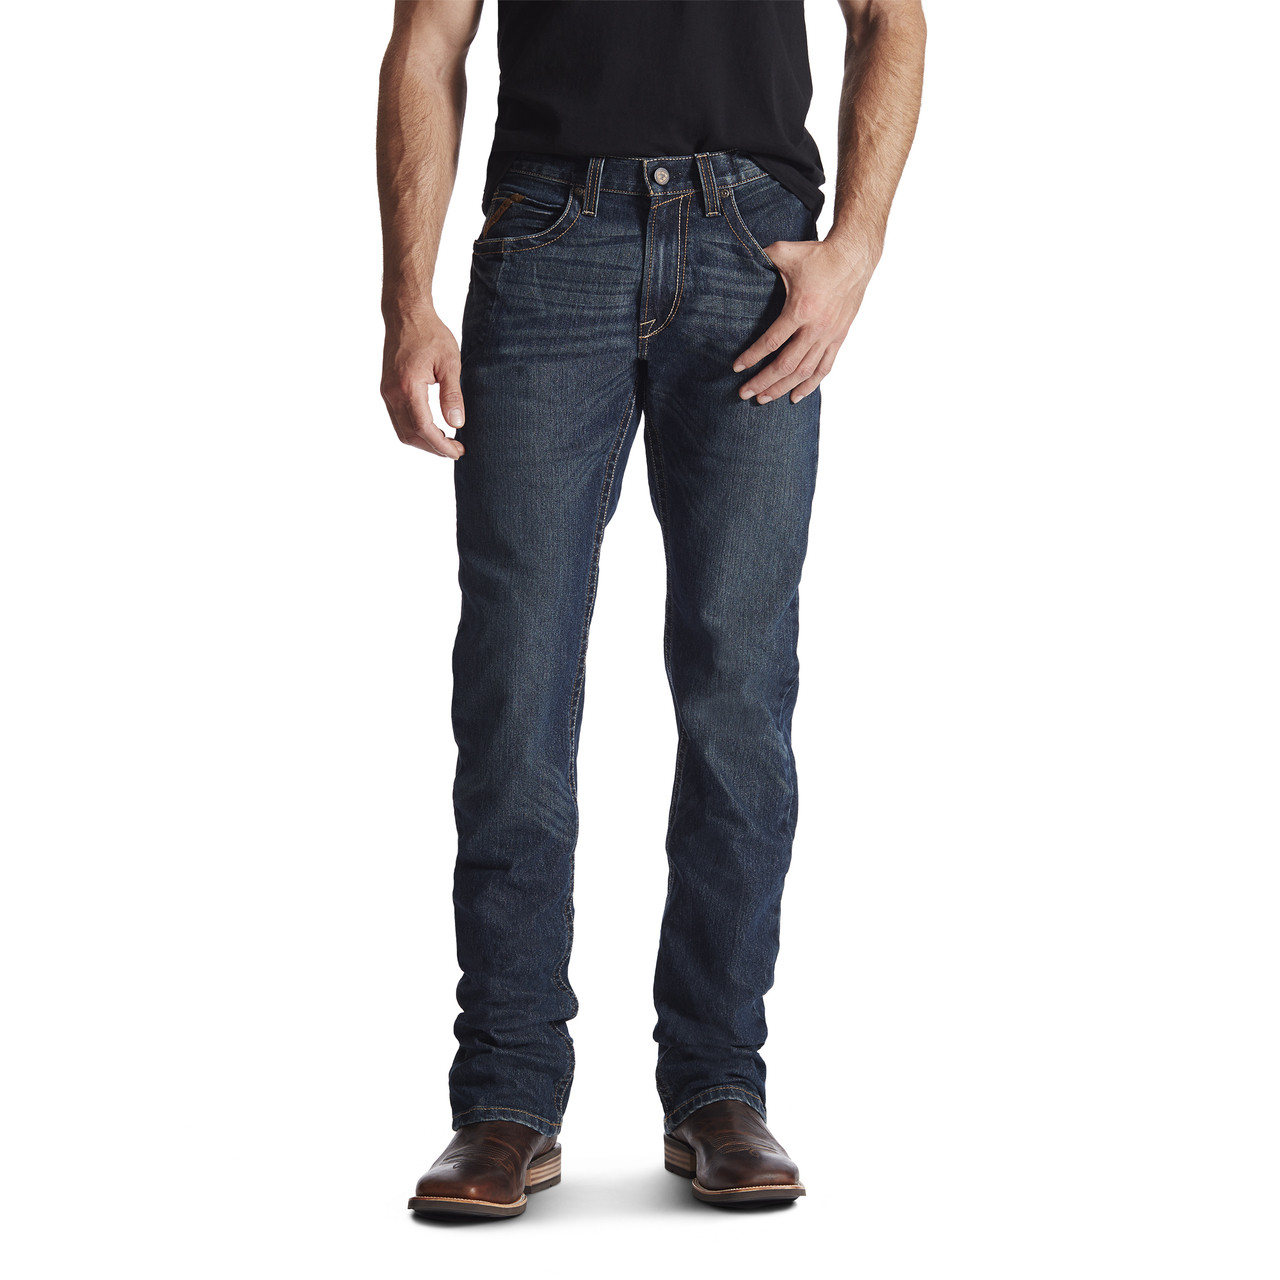 ef3dca1efa09 REBAR M5 SLIM STRAIGHT IRONSIDE JEANS - The Brown Duck